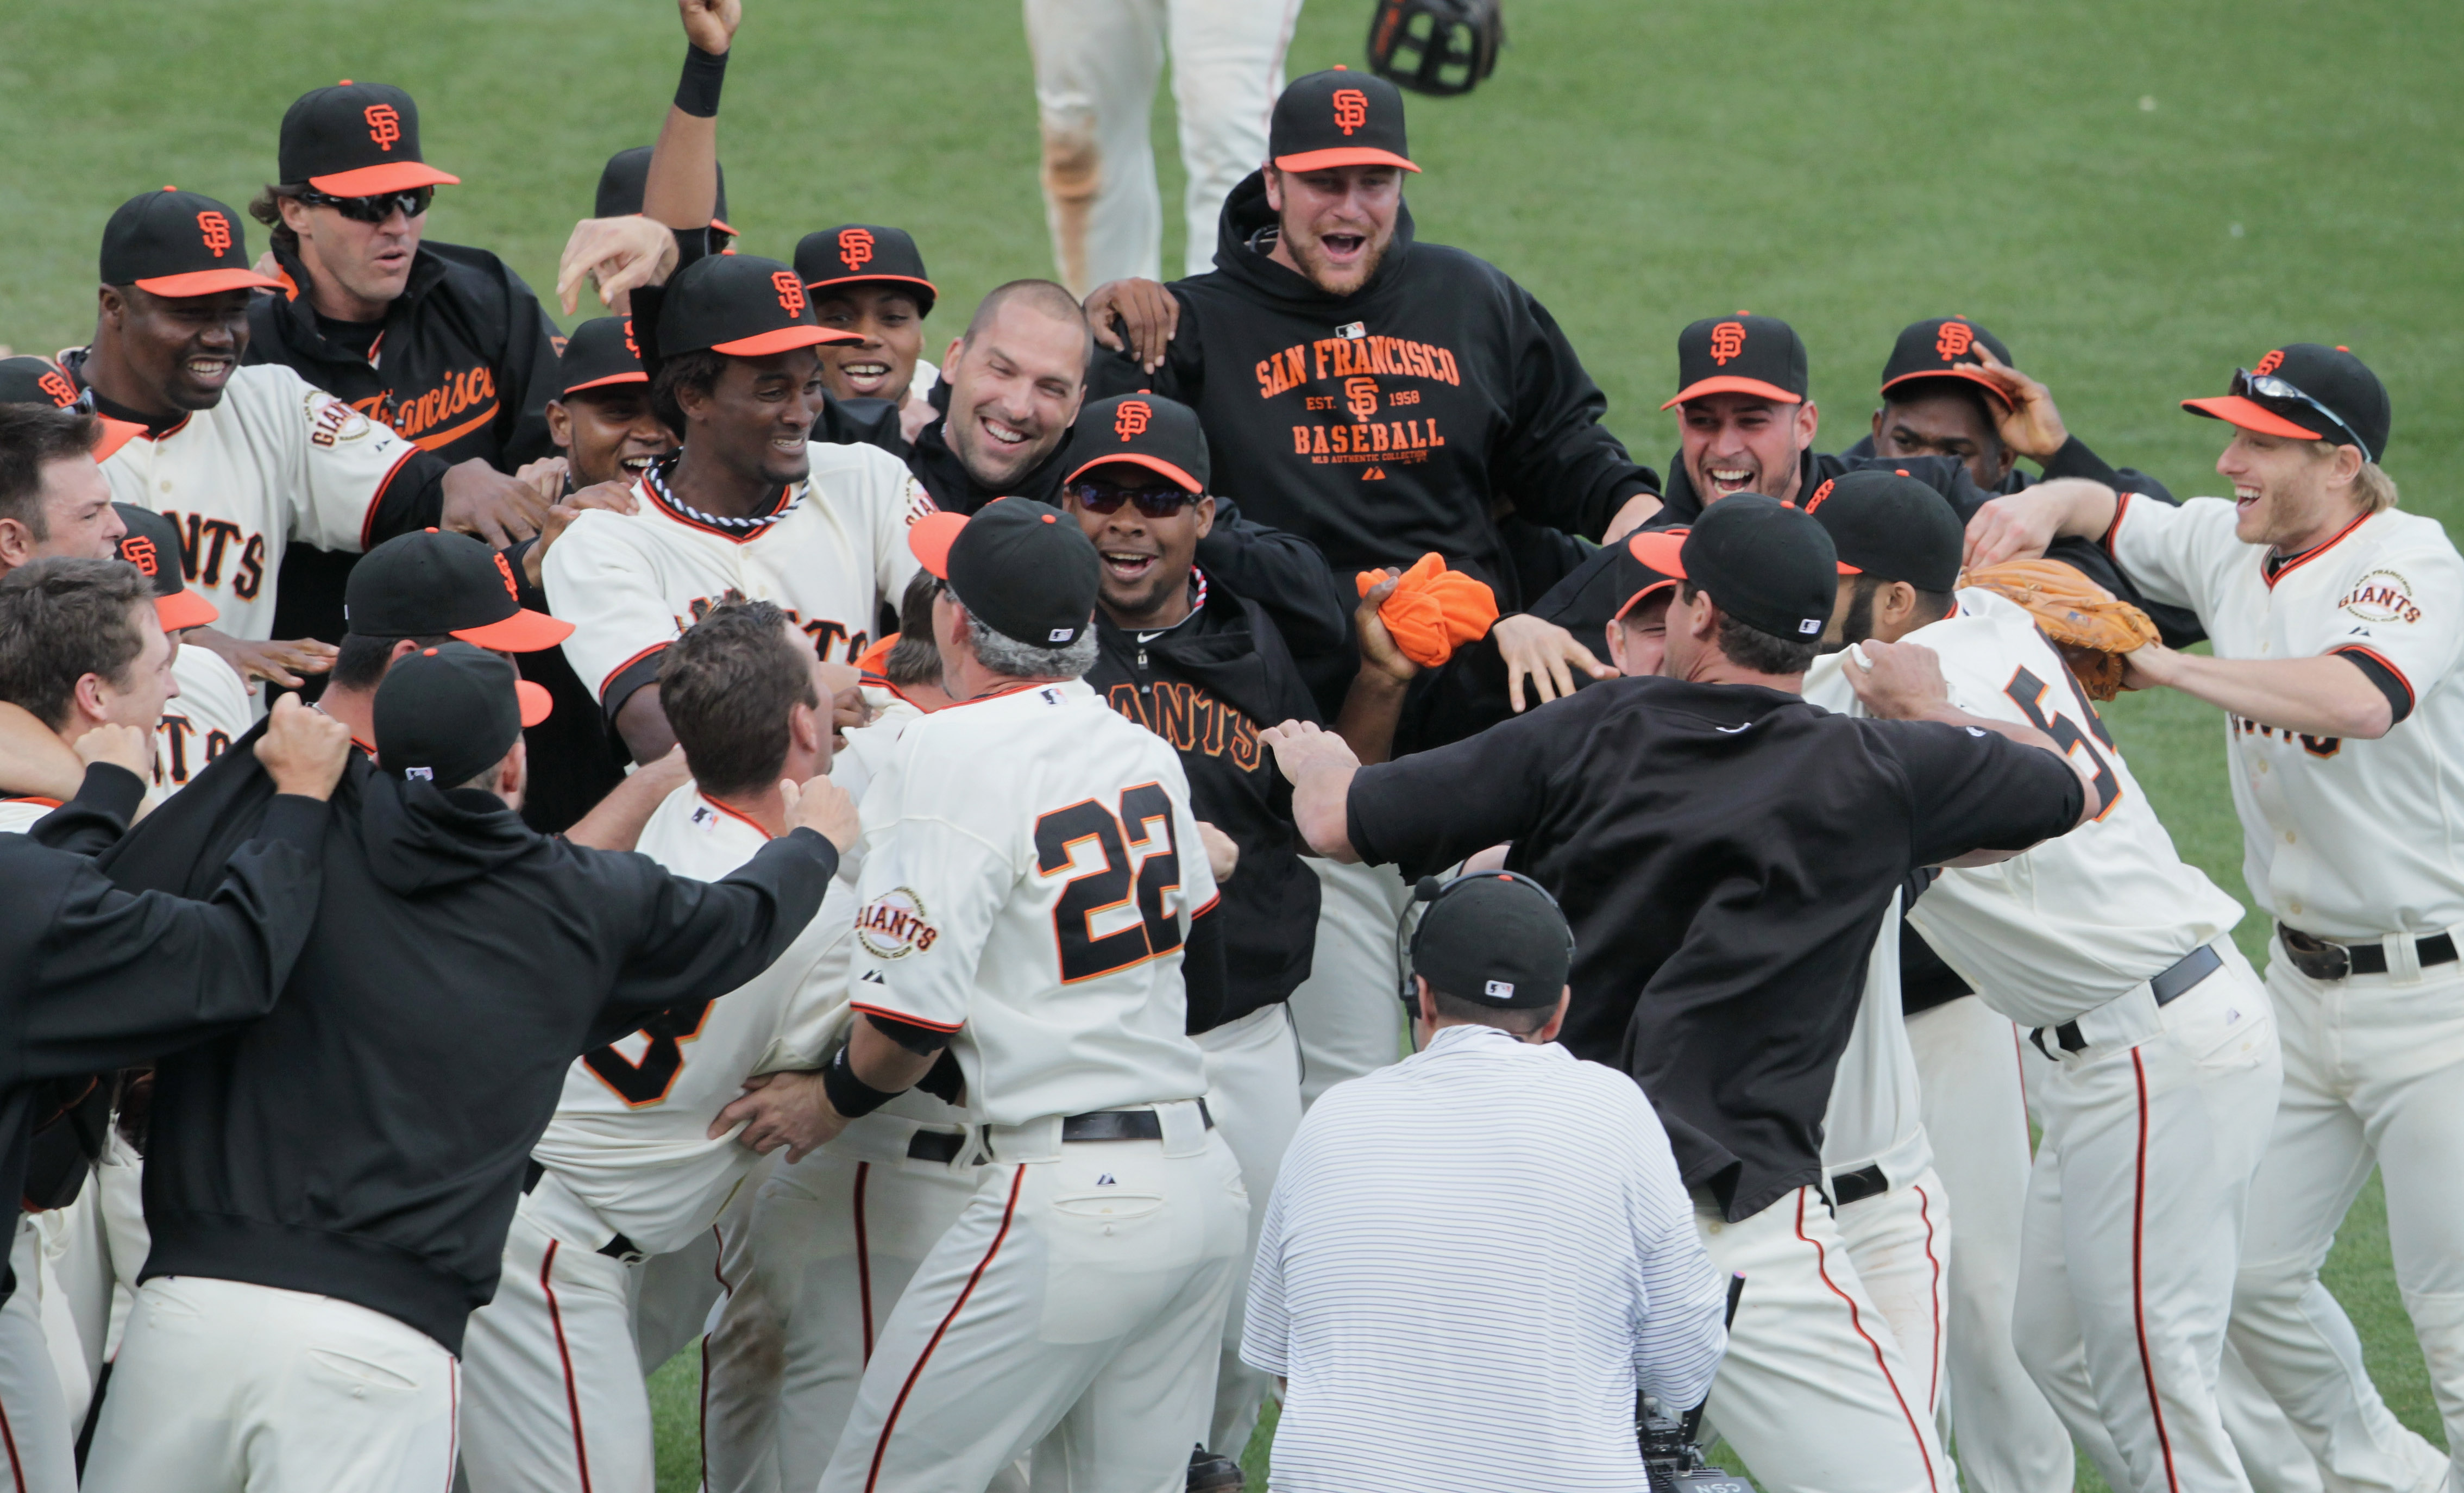 SAN FRANCISCO - OCTOBER 03:  San Francisco Giants players celebrate after clinching the National League West divsion against the San Diego Padres at AT&T Park on October 3, 2010 in San Francisco, California.  The Giants beat the Padres 3-0.  (Photo by Jus